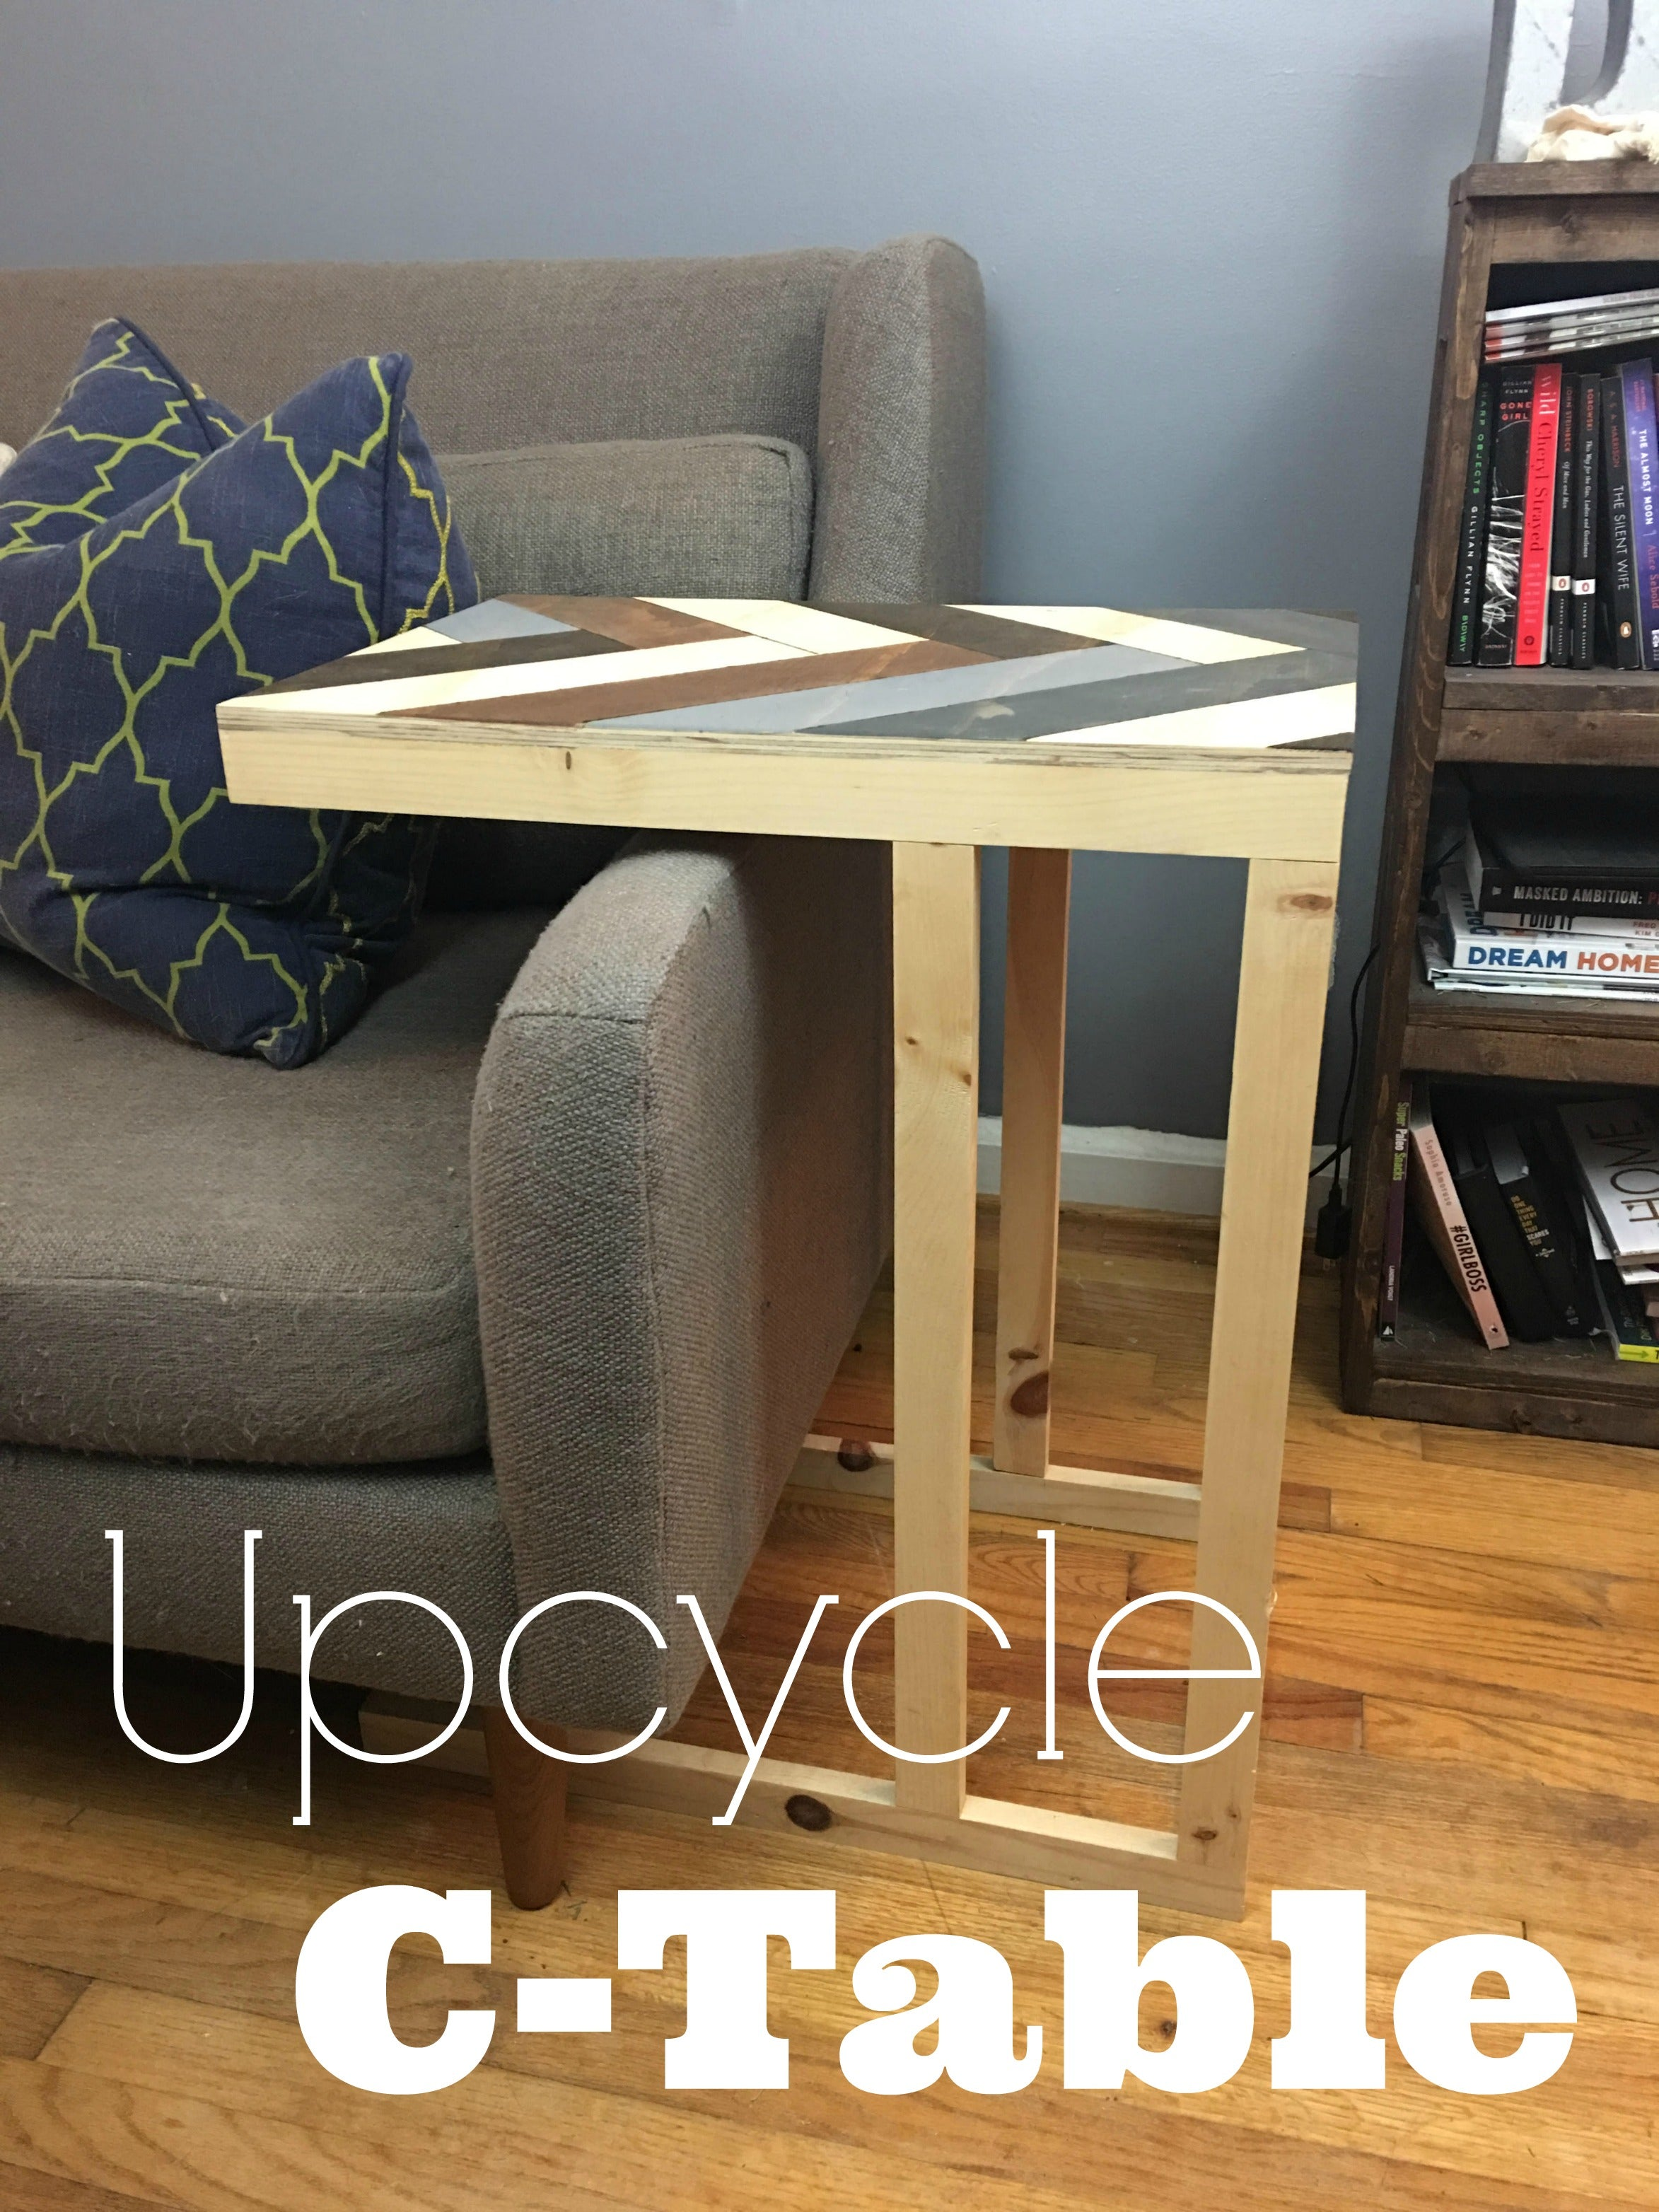 upcycle c-table